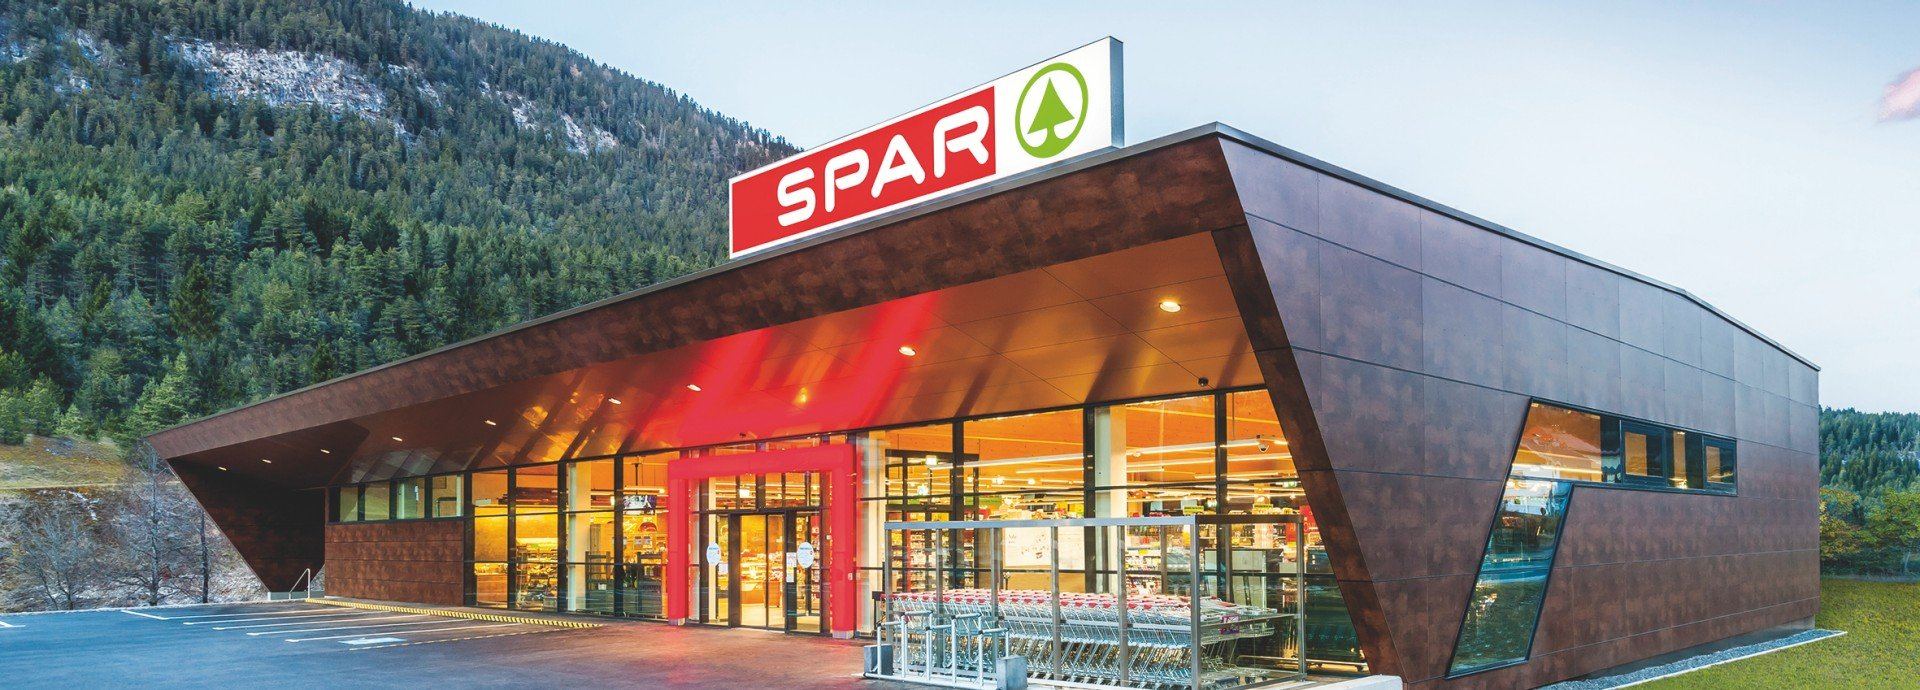 SPAR-Supermarkt Bad Bleiberg